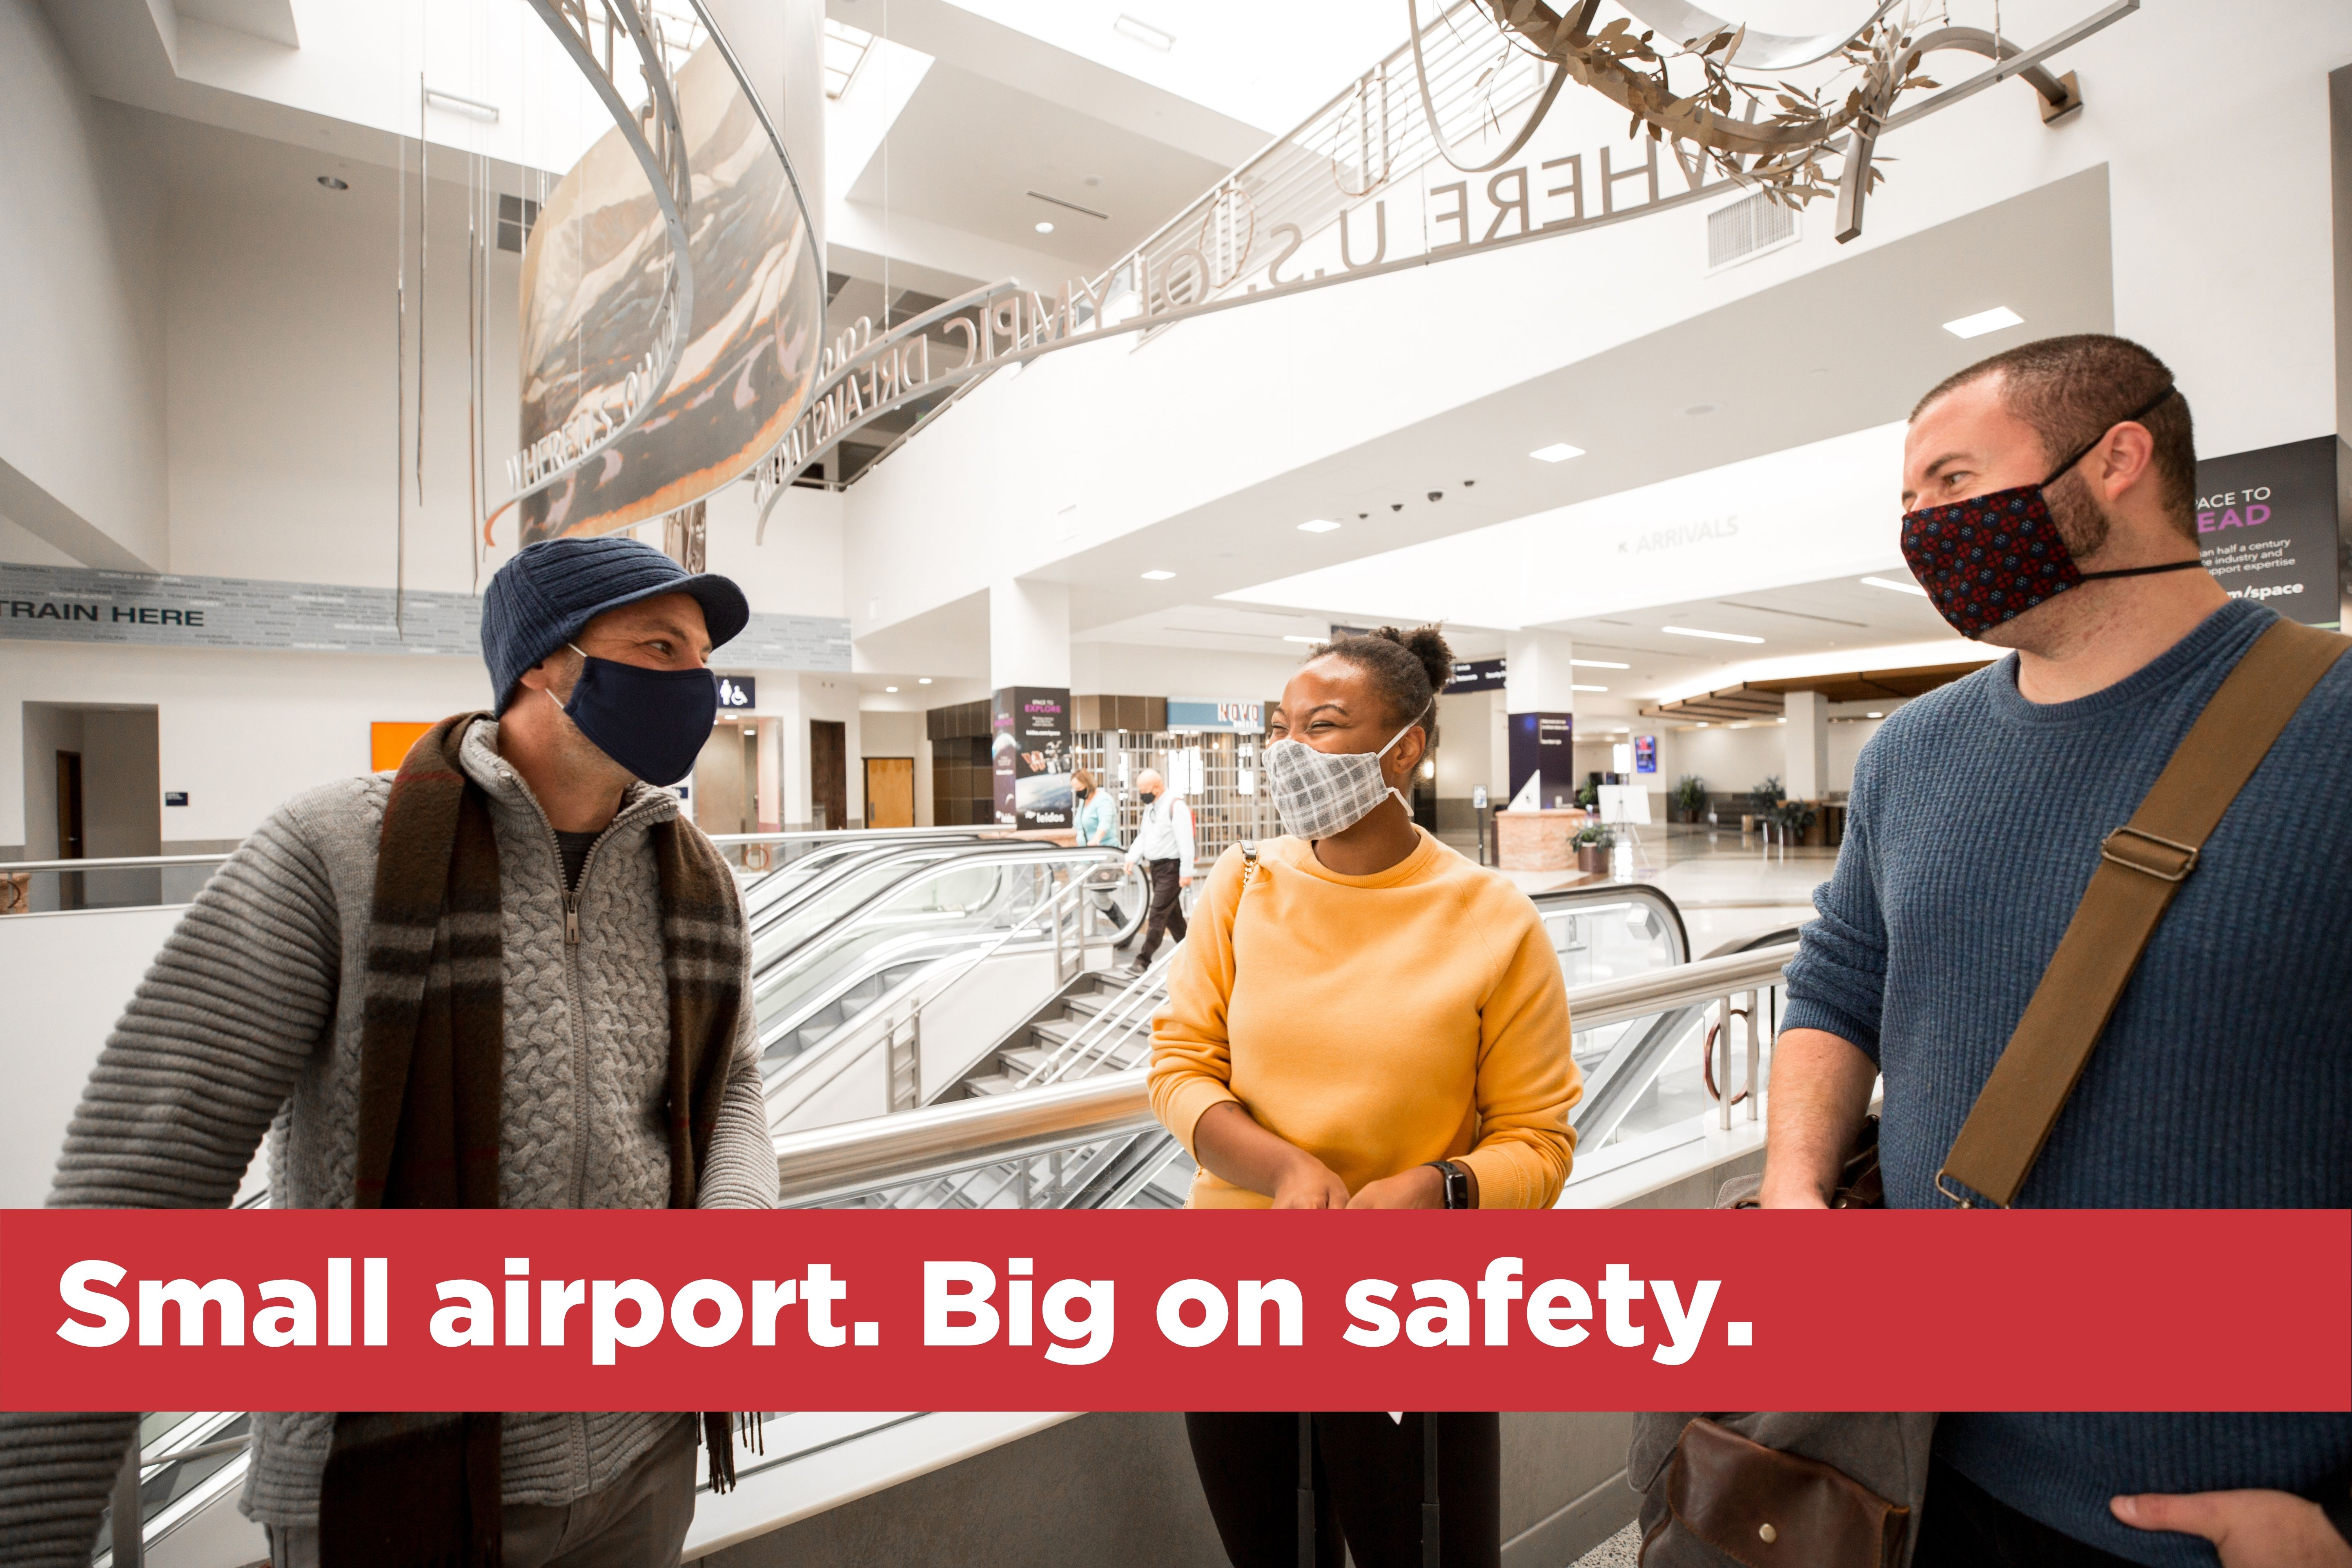 Small airport. Big on safety.